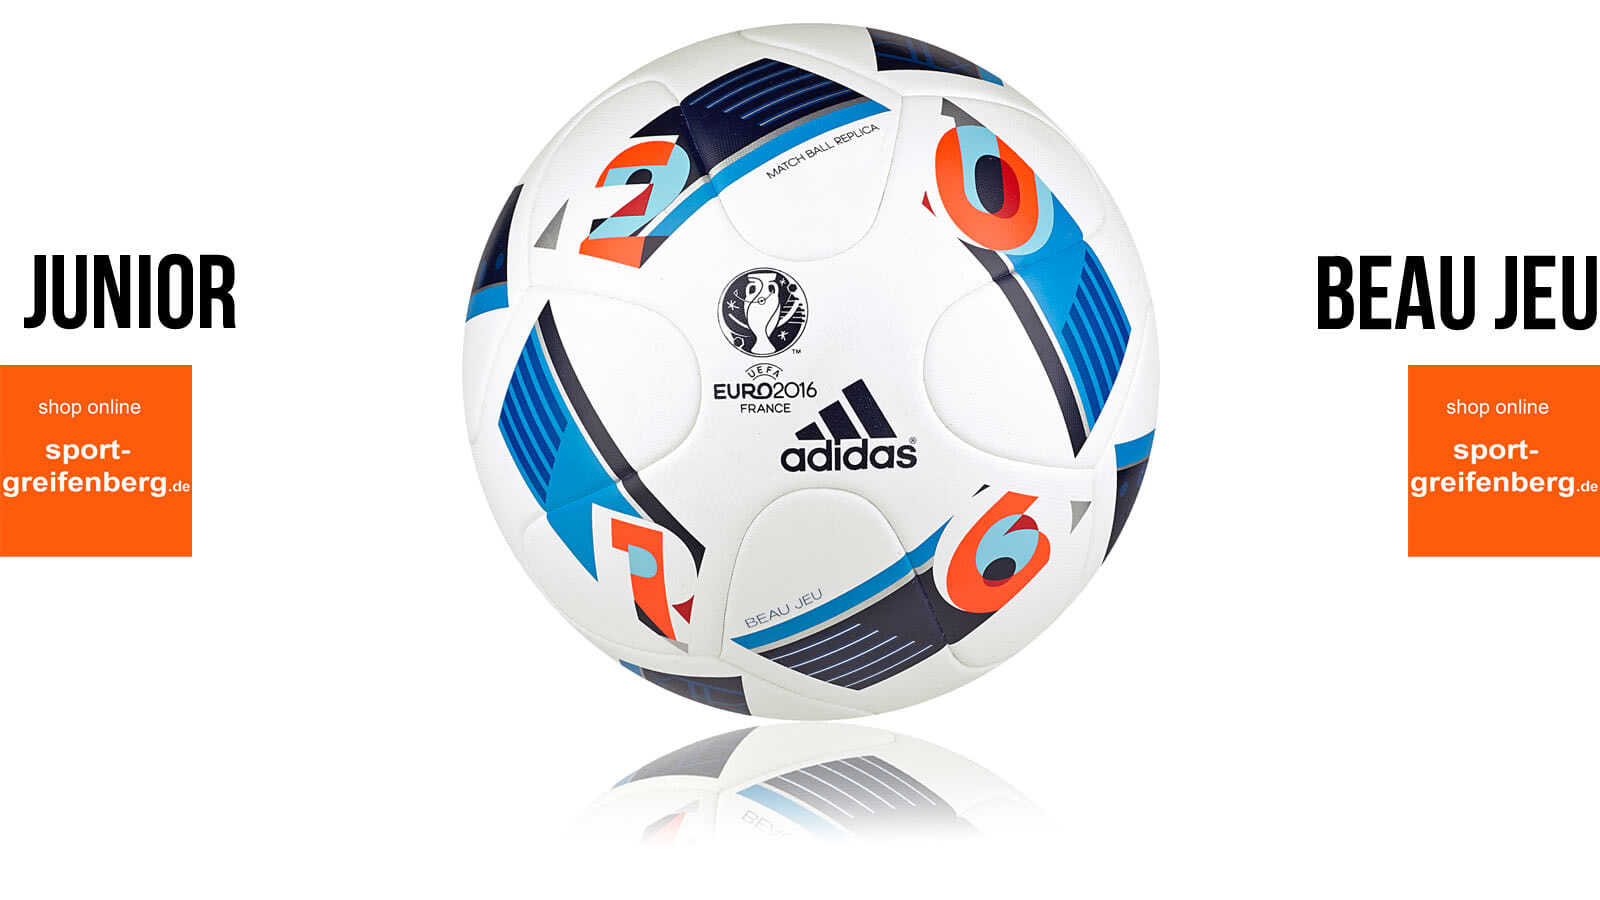 Adidas Beau Jeu Junior Ball 350 - 290